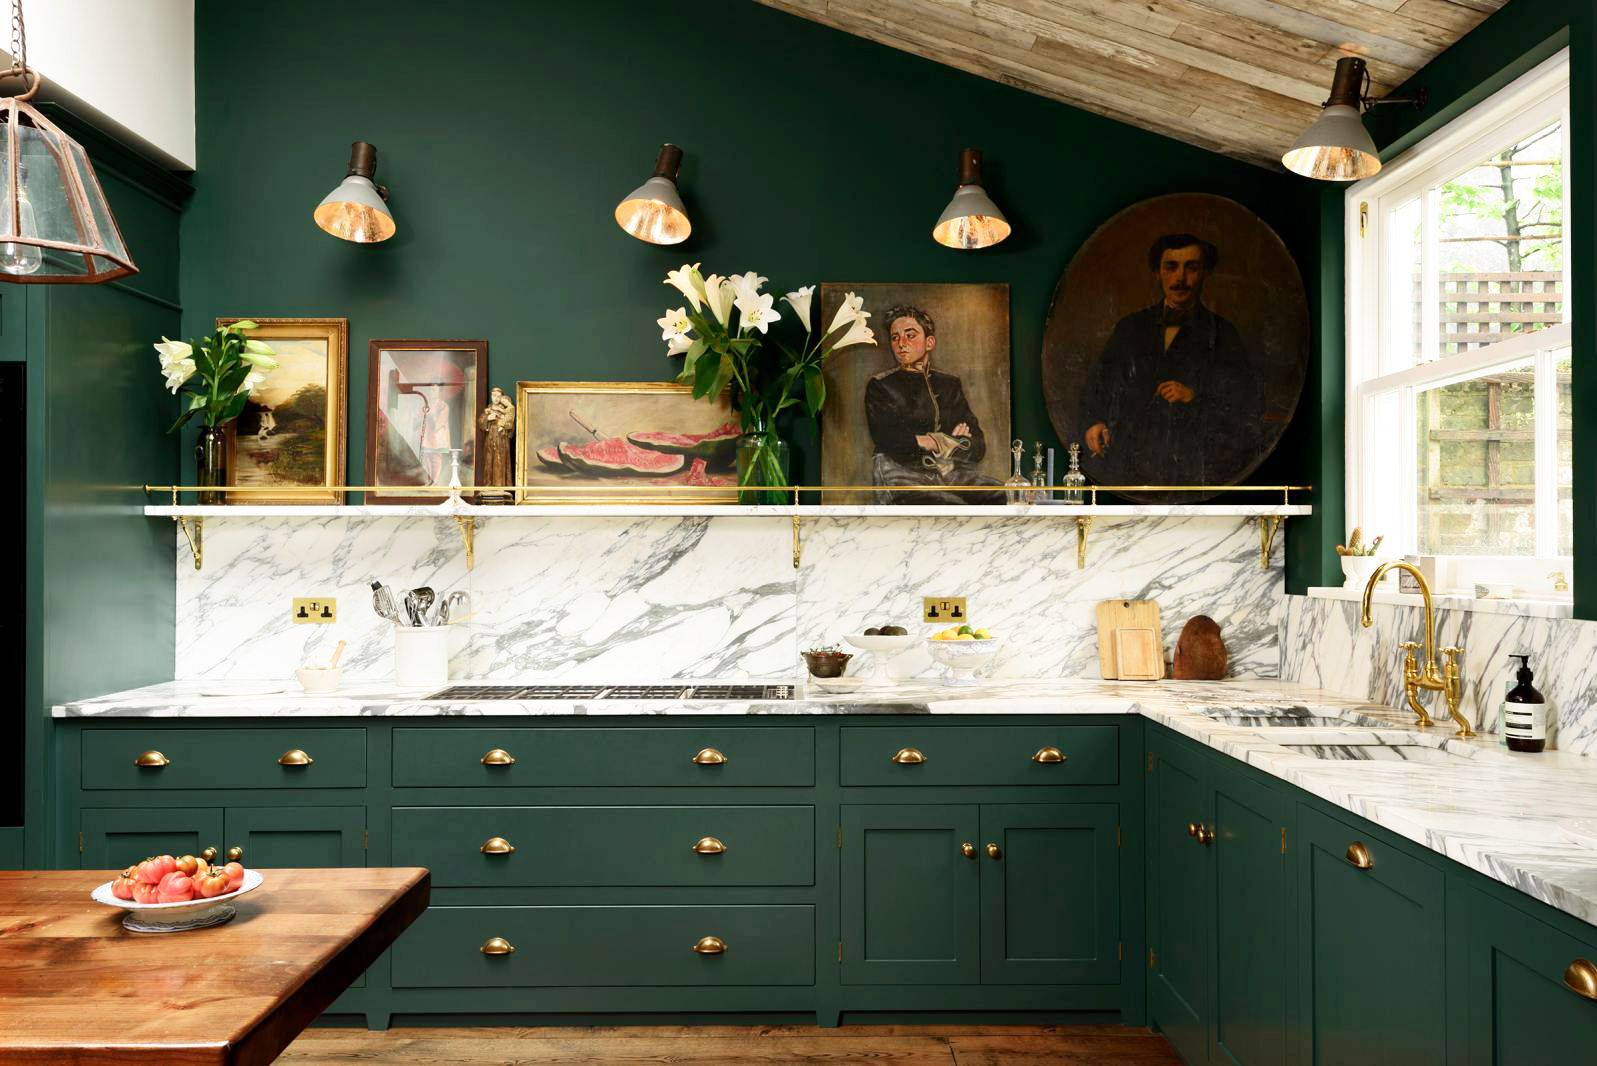 80 Kitchens That'll Make You Want To Redo Yours